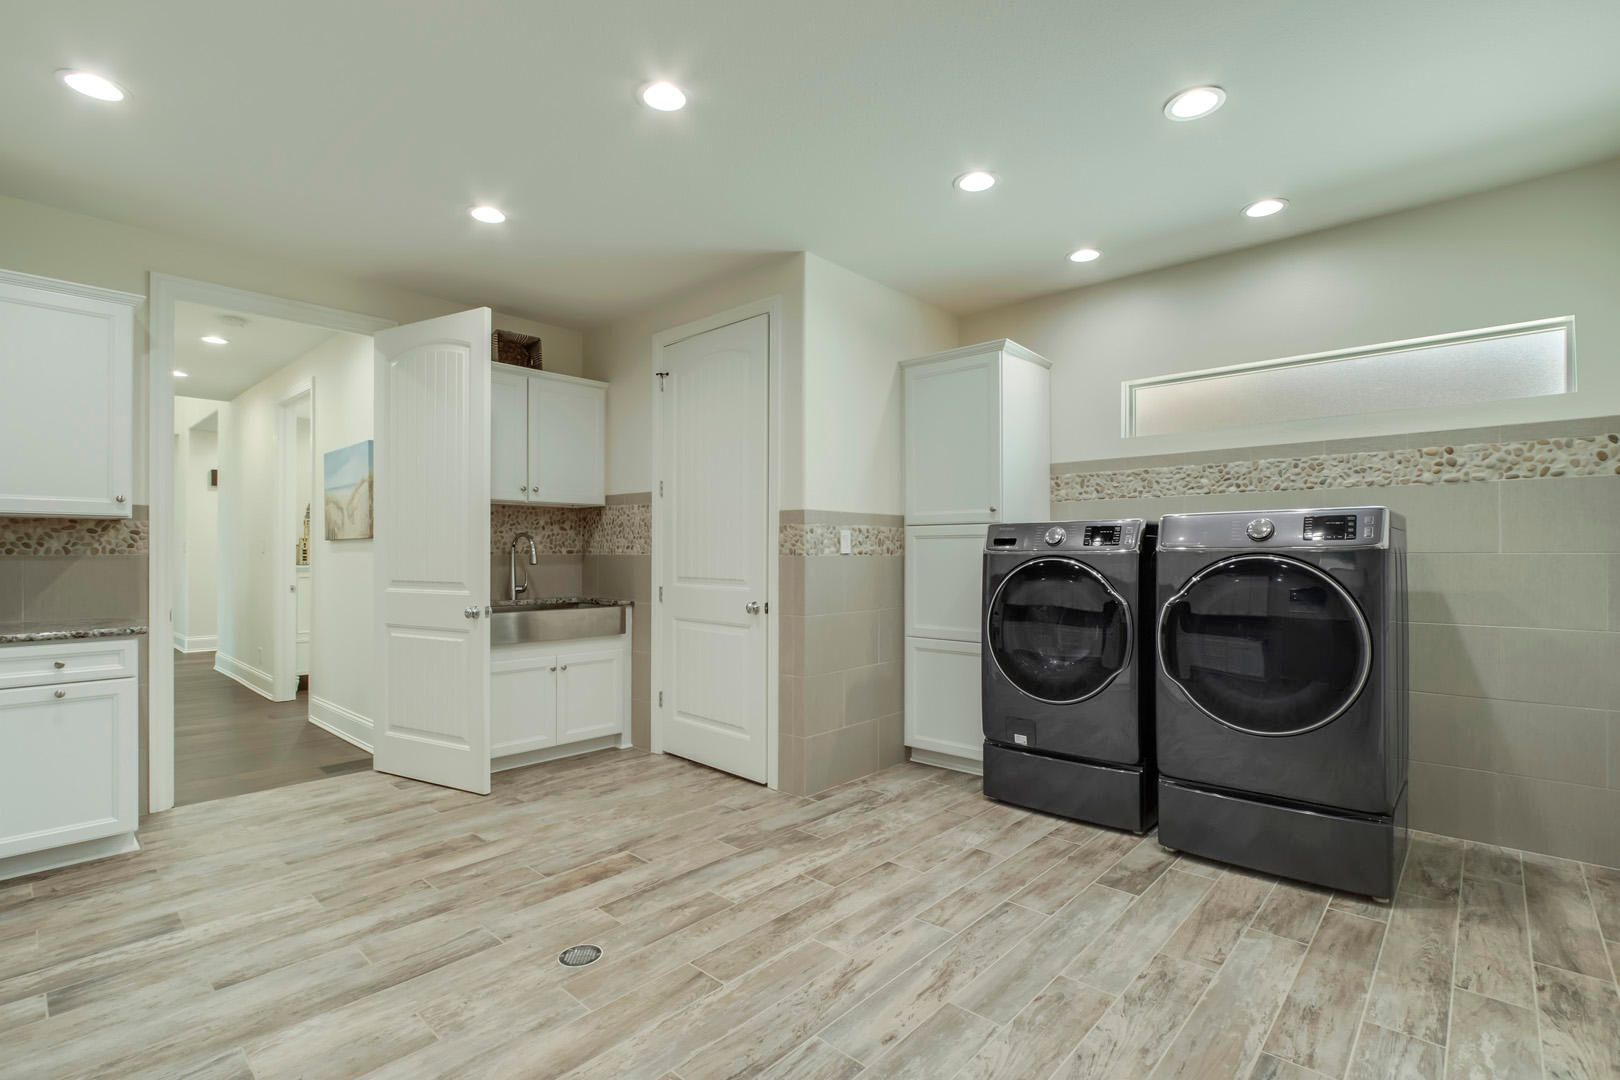 30_CabotRidgeLane_12815_Laundry-Mudroom0